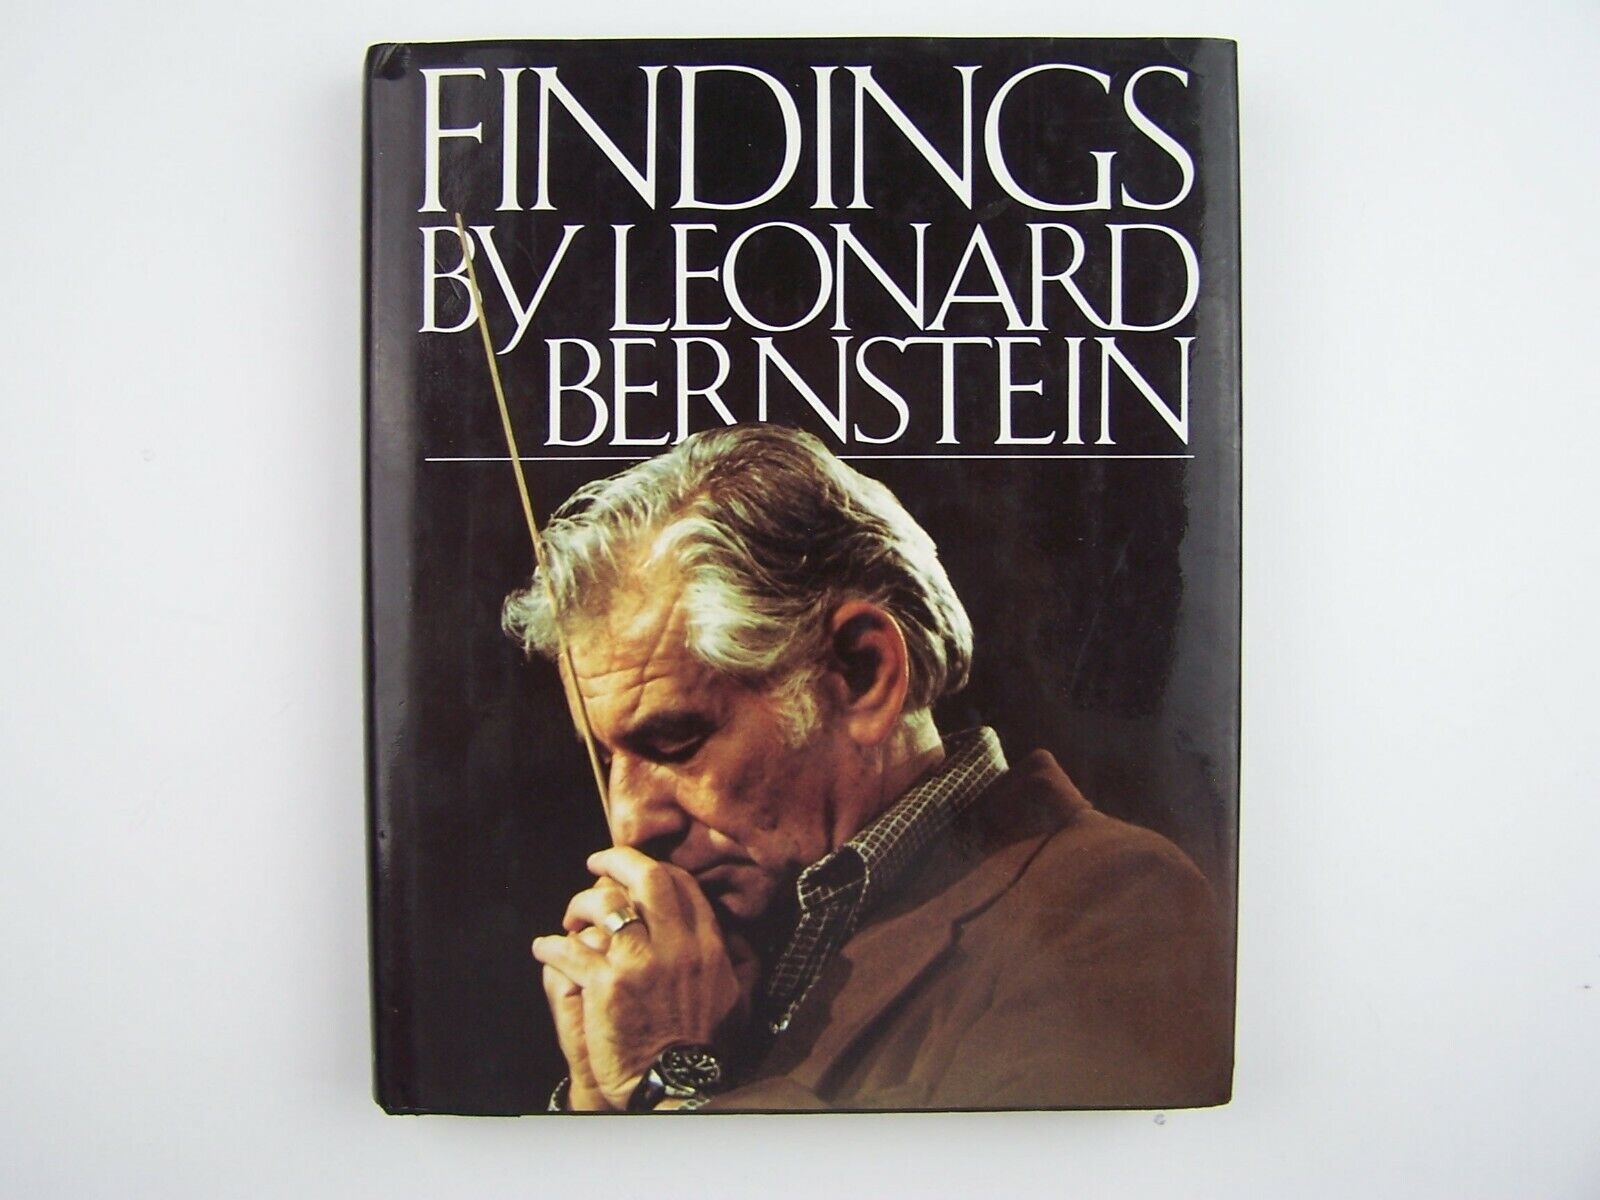 Leonard Bernstein Findings Hardcover 1982 First Edition